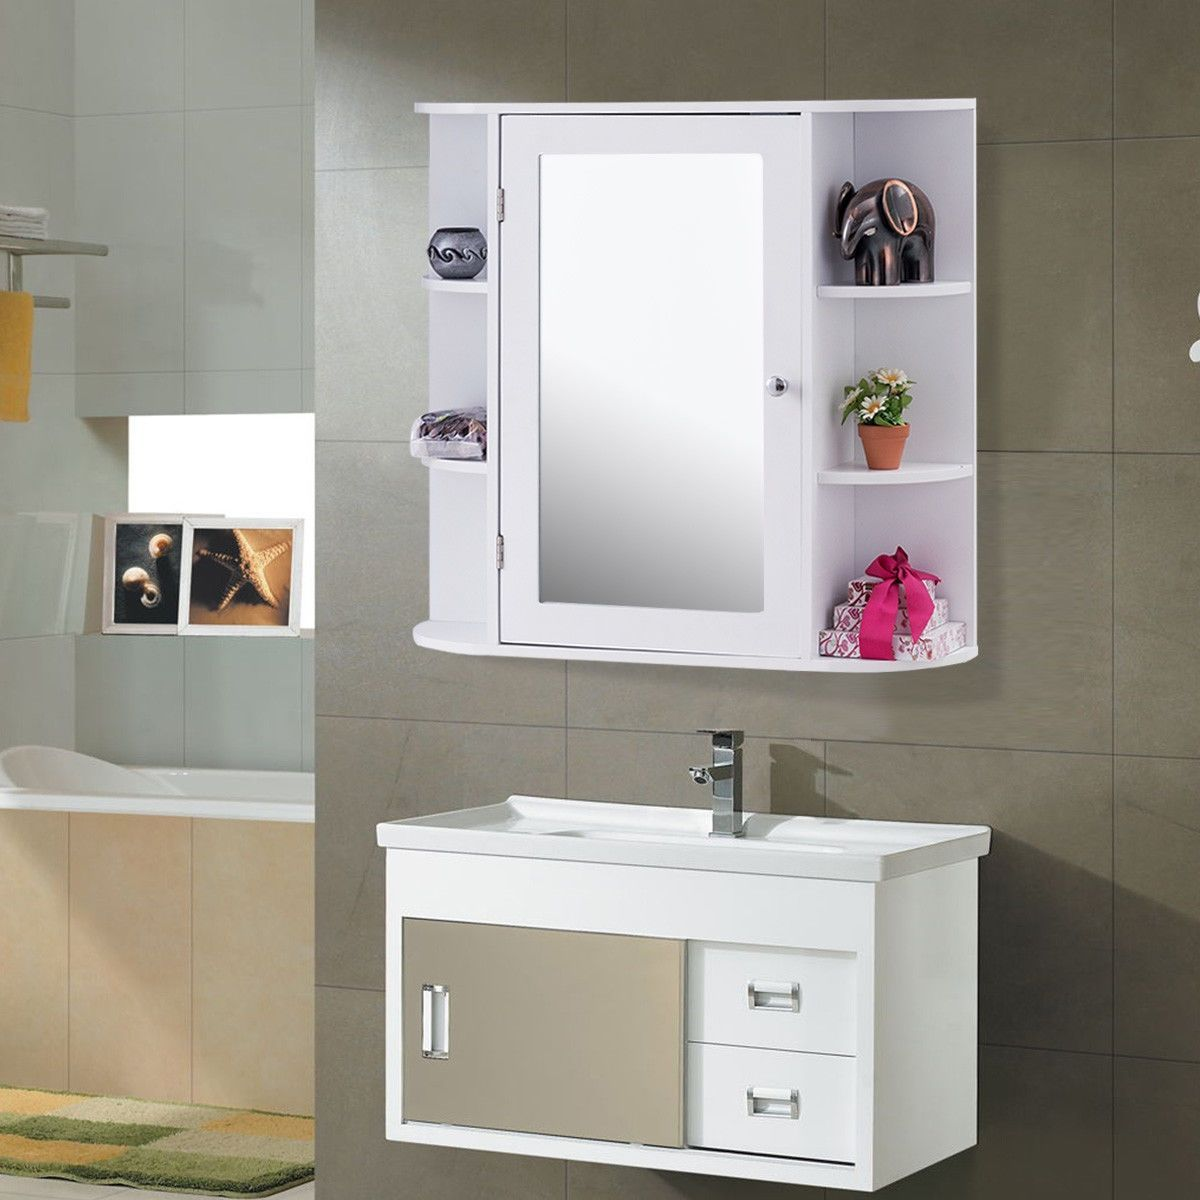 Amazing And Unique Tips Wall Mirror Ideas Entryway Tables Wall Mirror With Lig Wall Mounted Bathroom Cabinets Bathroom Mirror Storage Bathroom Storage Cabinet